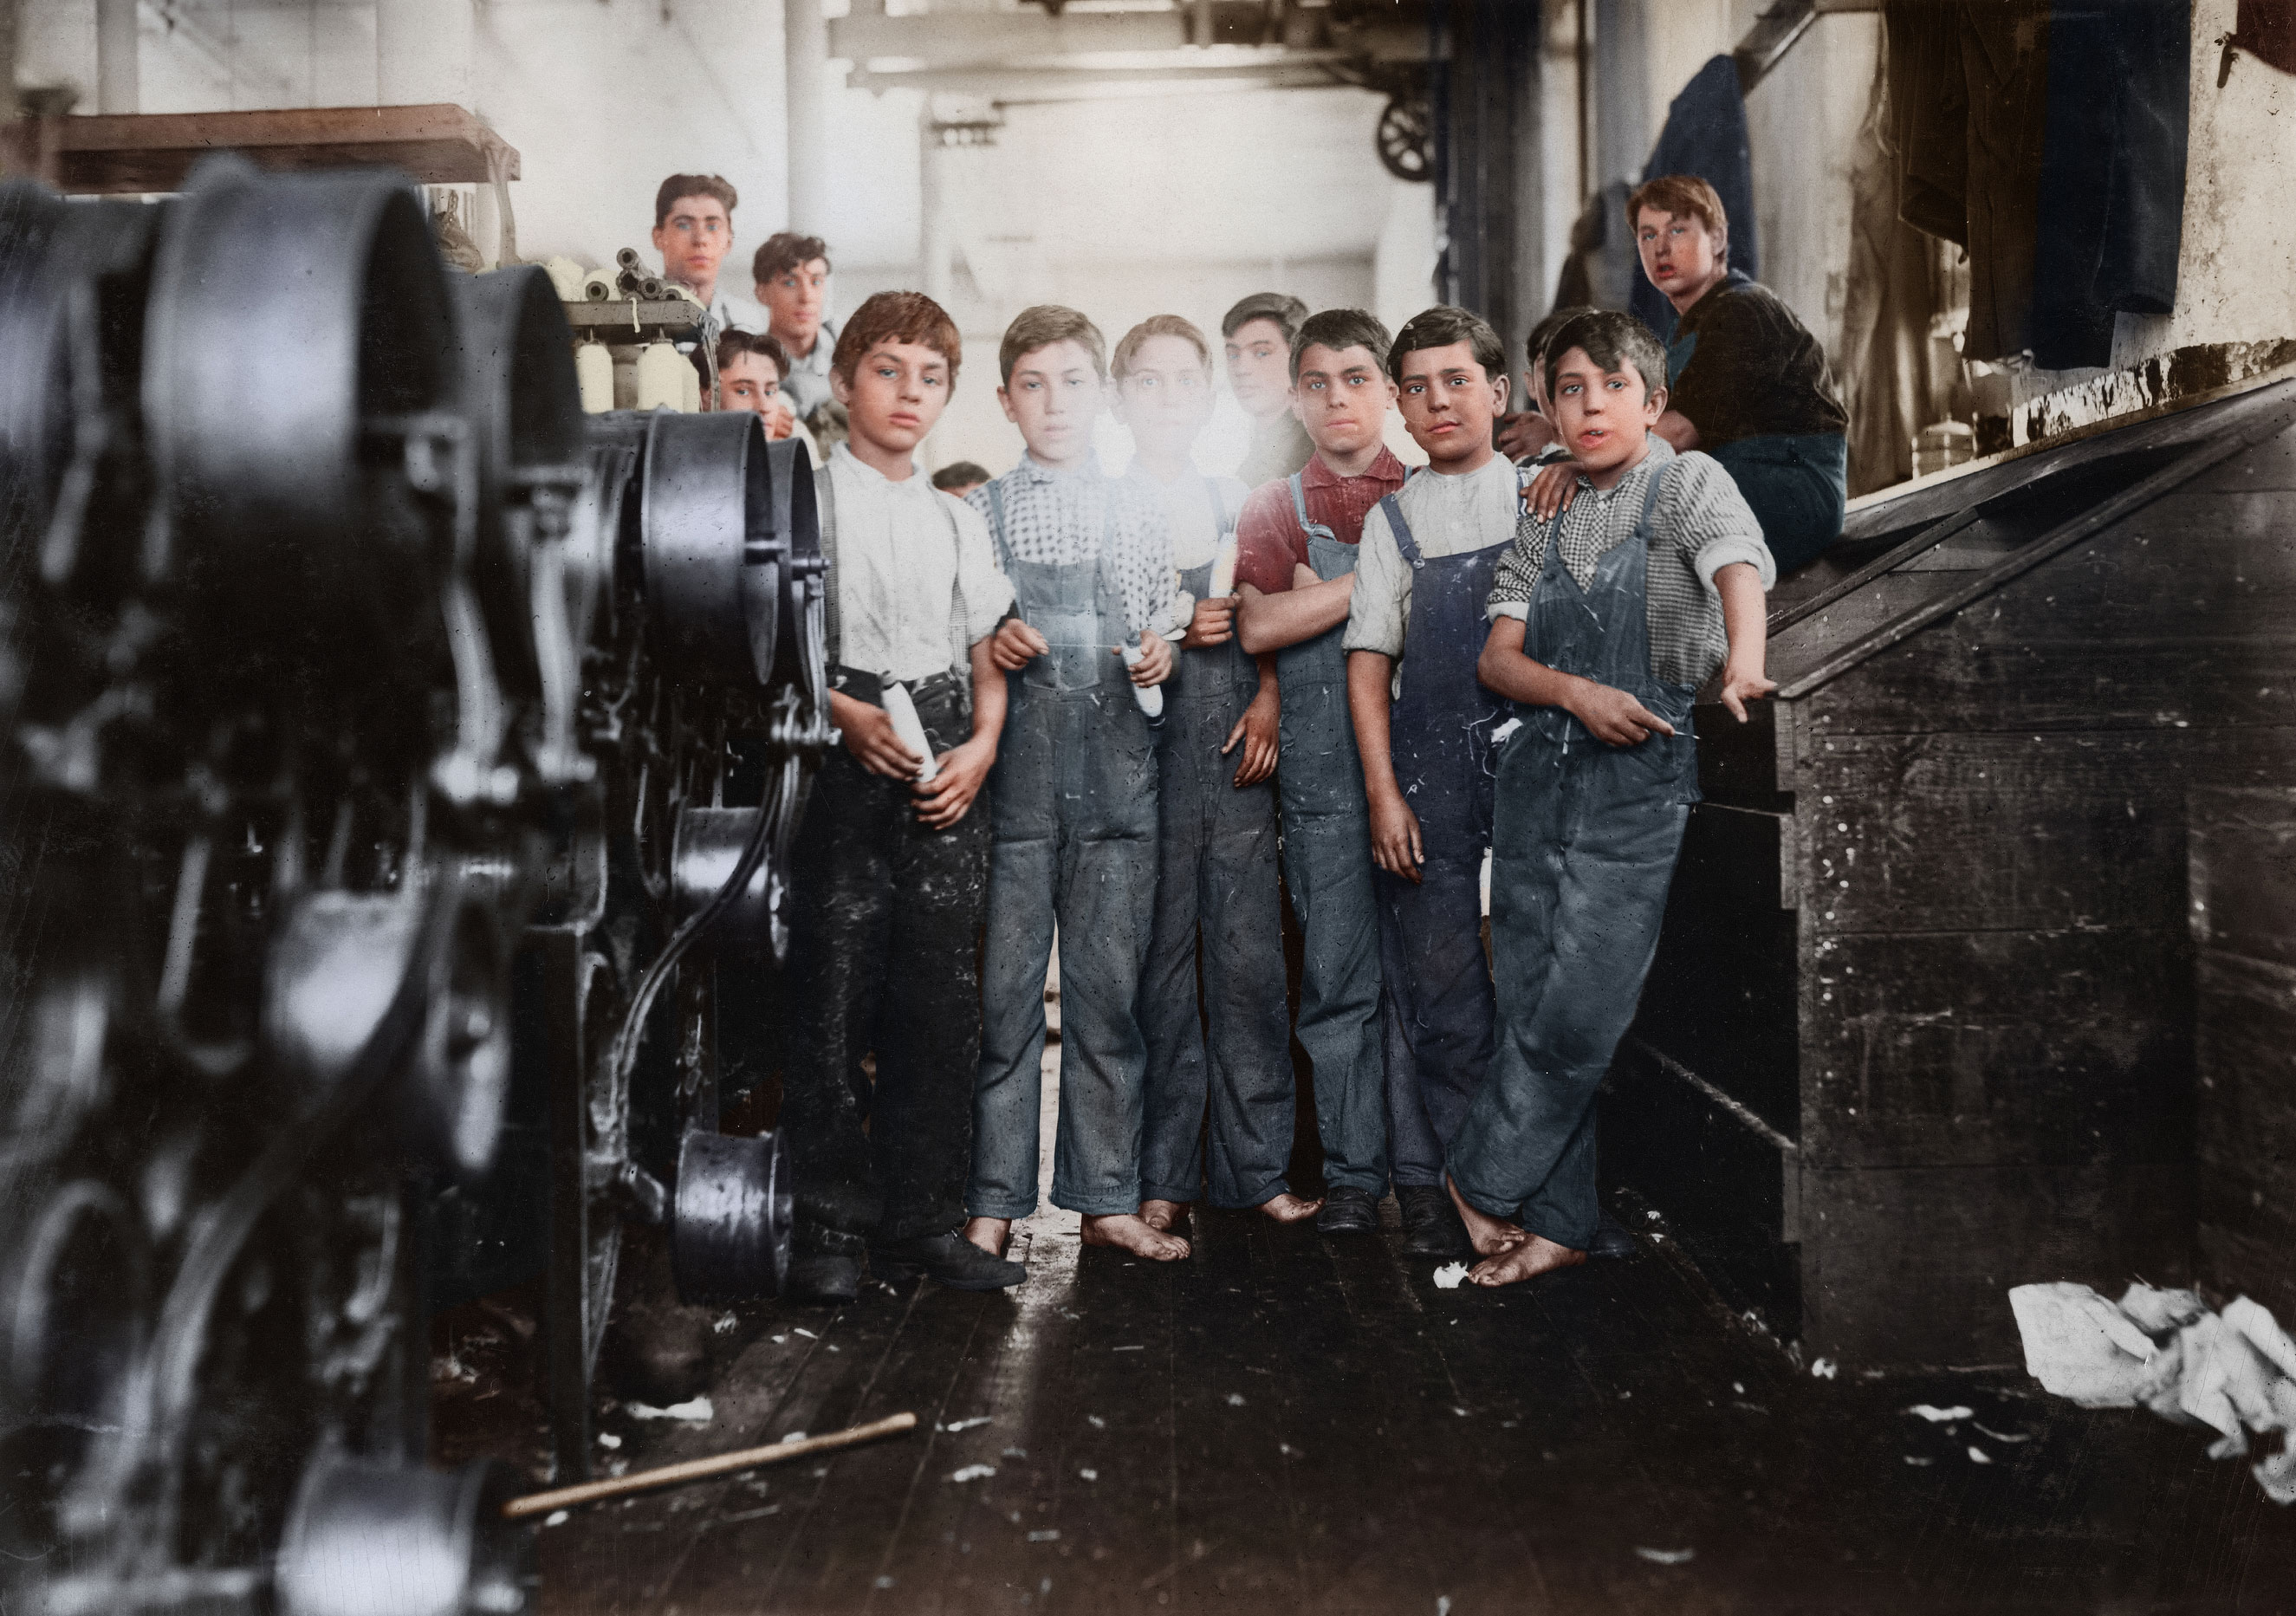 Young doffer and spinner boys in Seaconnet Mill. The youngest are Manuel Perry, 111 Pitman St. John E. Mello, 229 Alden St. Manuel Louis. None of these could write their own names. The last couldn't spell the street he lives on. They spoke almost no English. Jan. 1912. Fall River, Massachusetts.